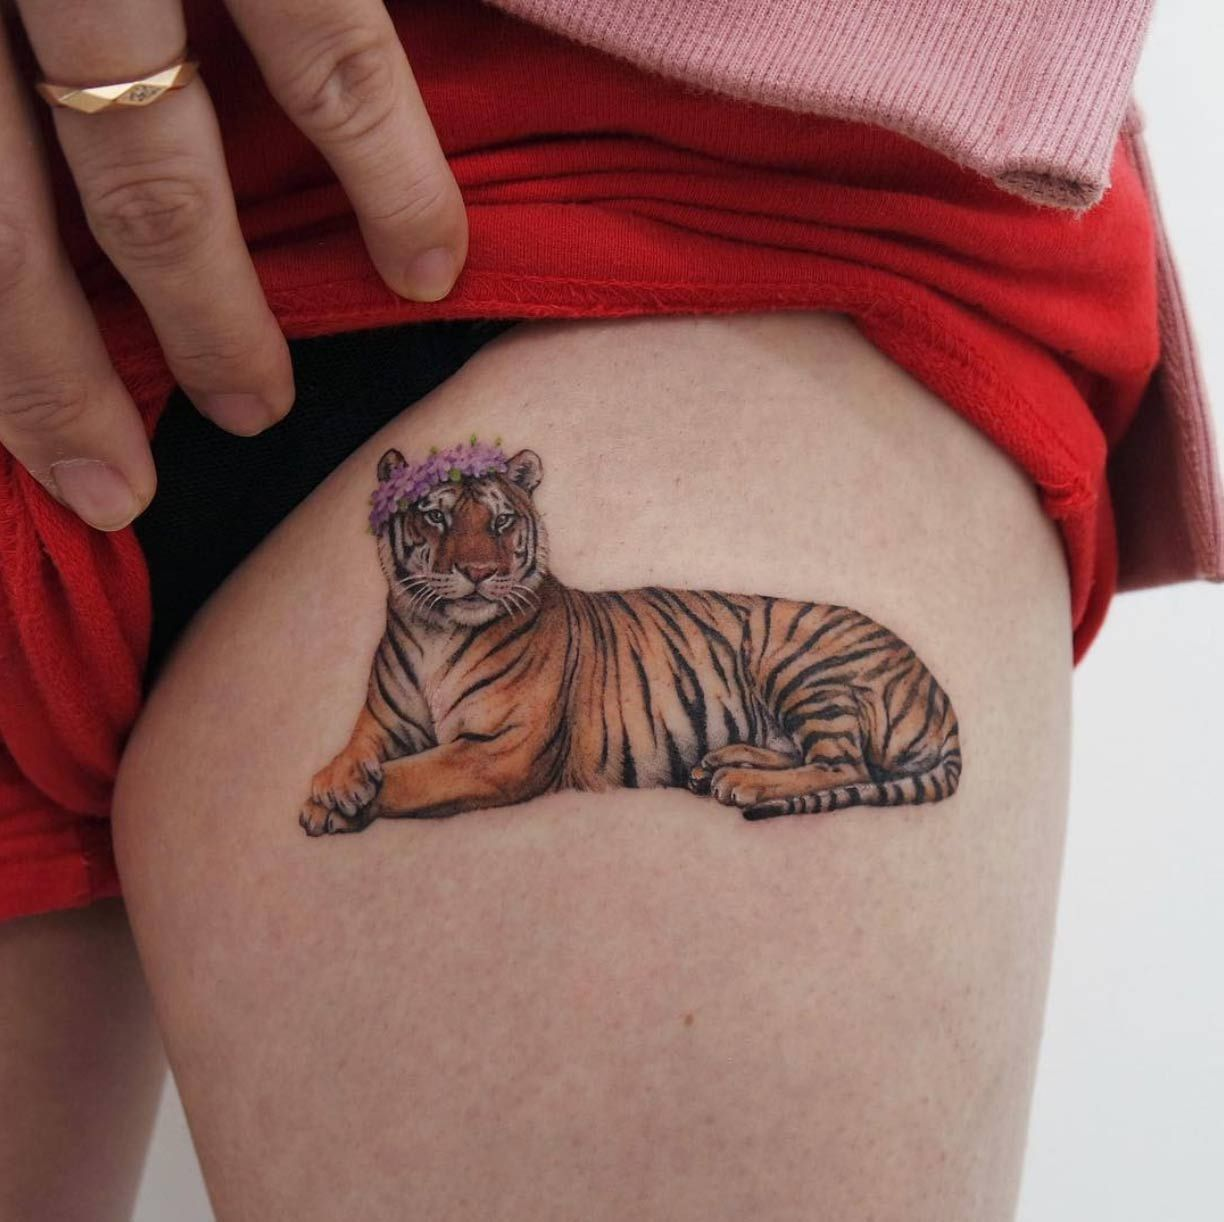 50 Gorgeous Tattoo Designs You Ll Desperately Desire Summer Tattoo Tiger Tattoo Design Tattoo Designs